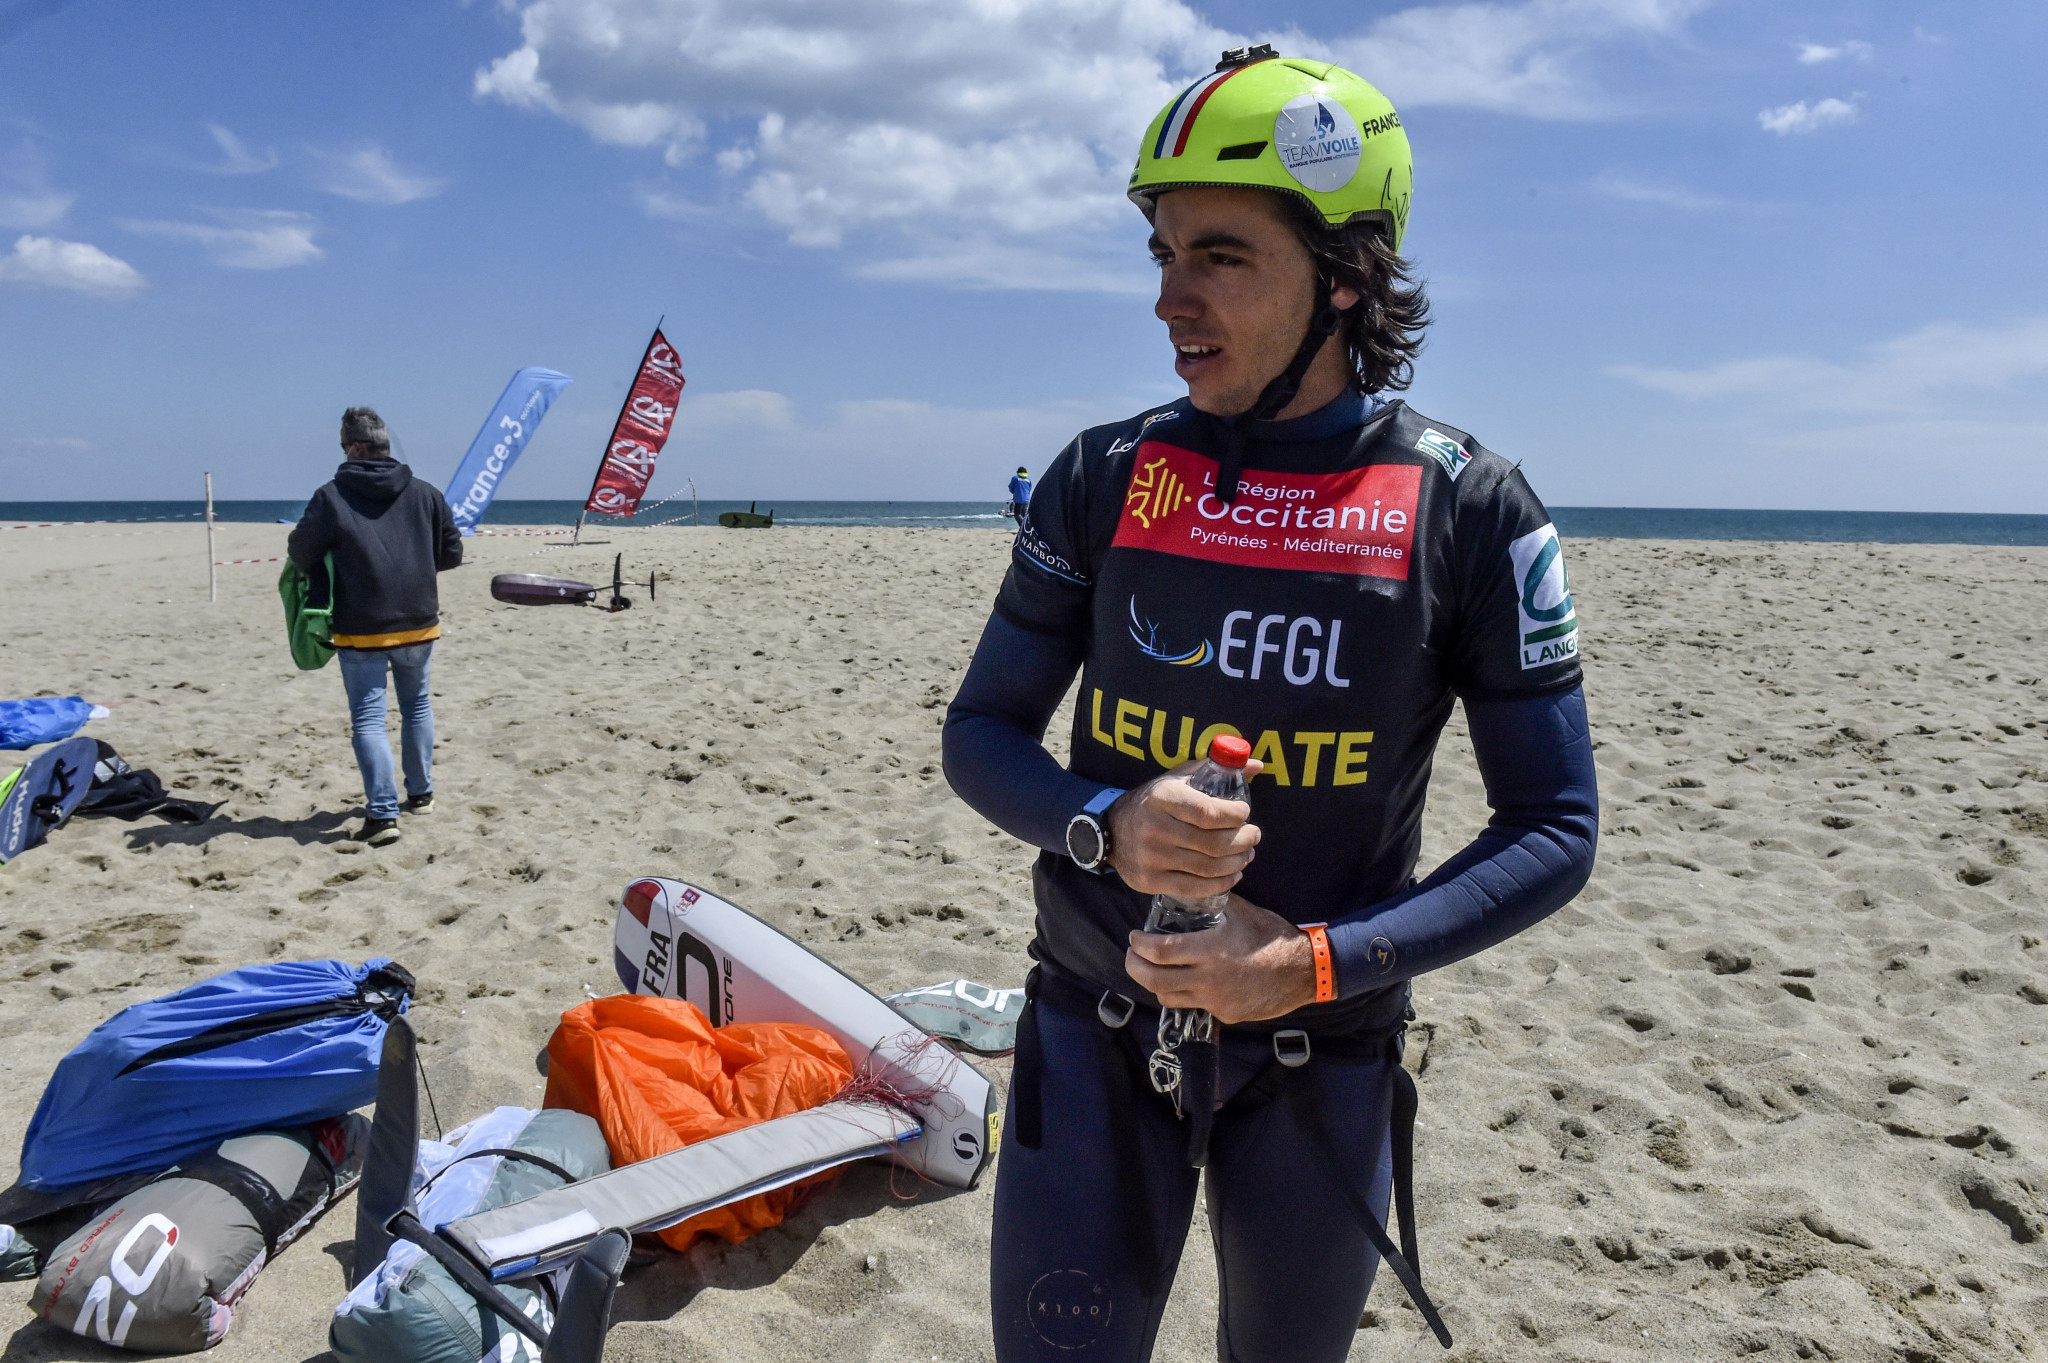 Mazella aims to defend KiteFoil World Series lead at third round in Cagliari